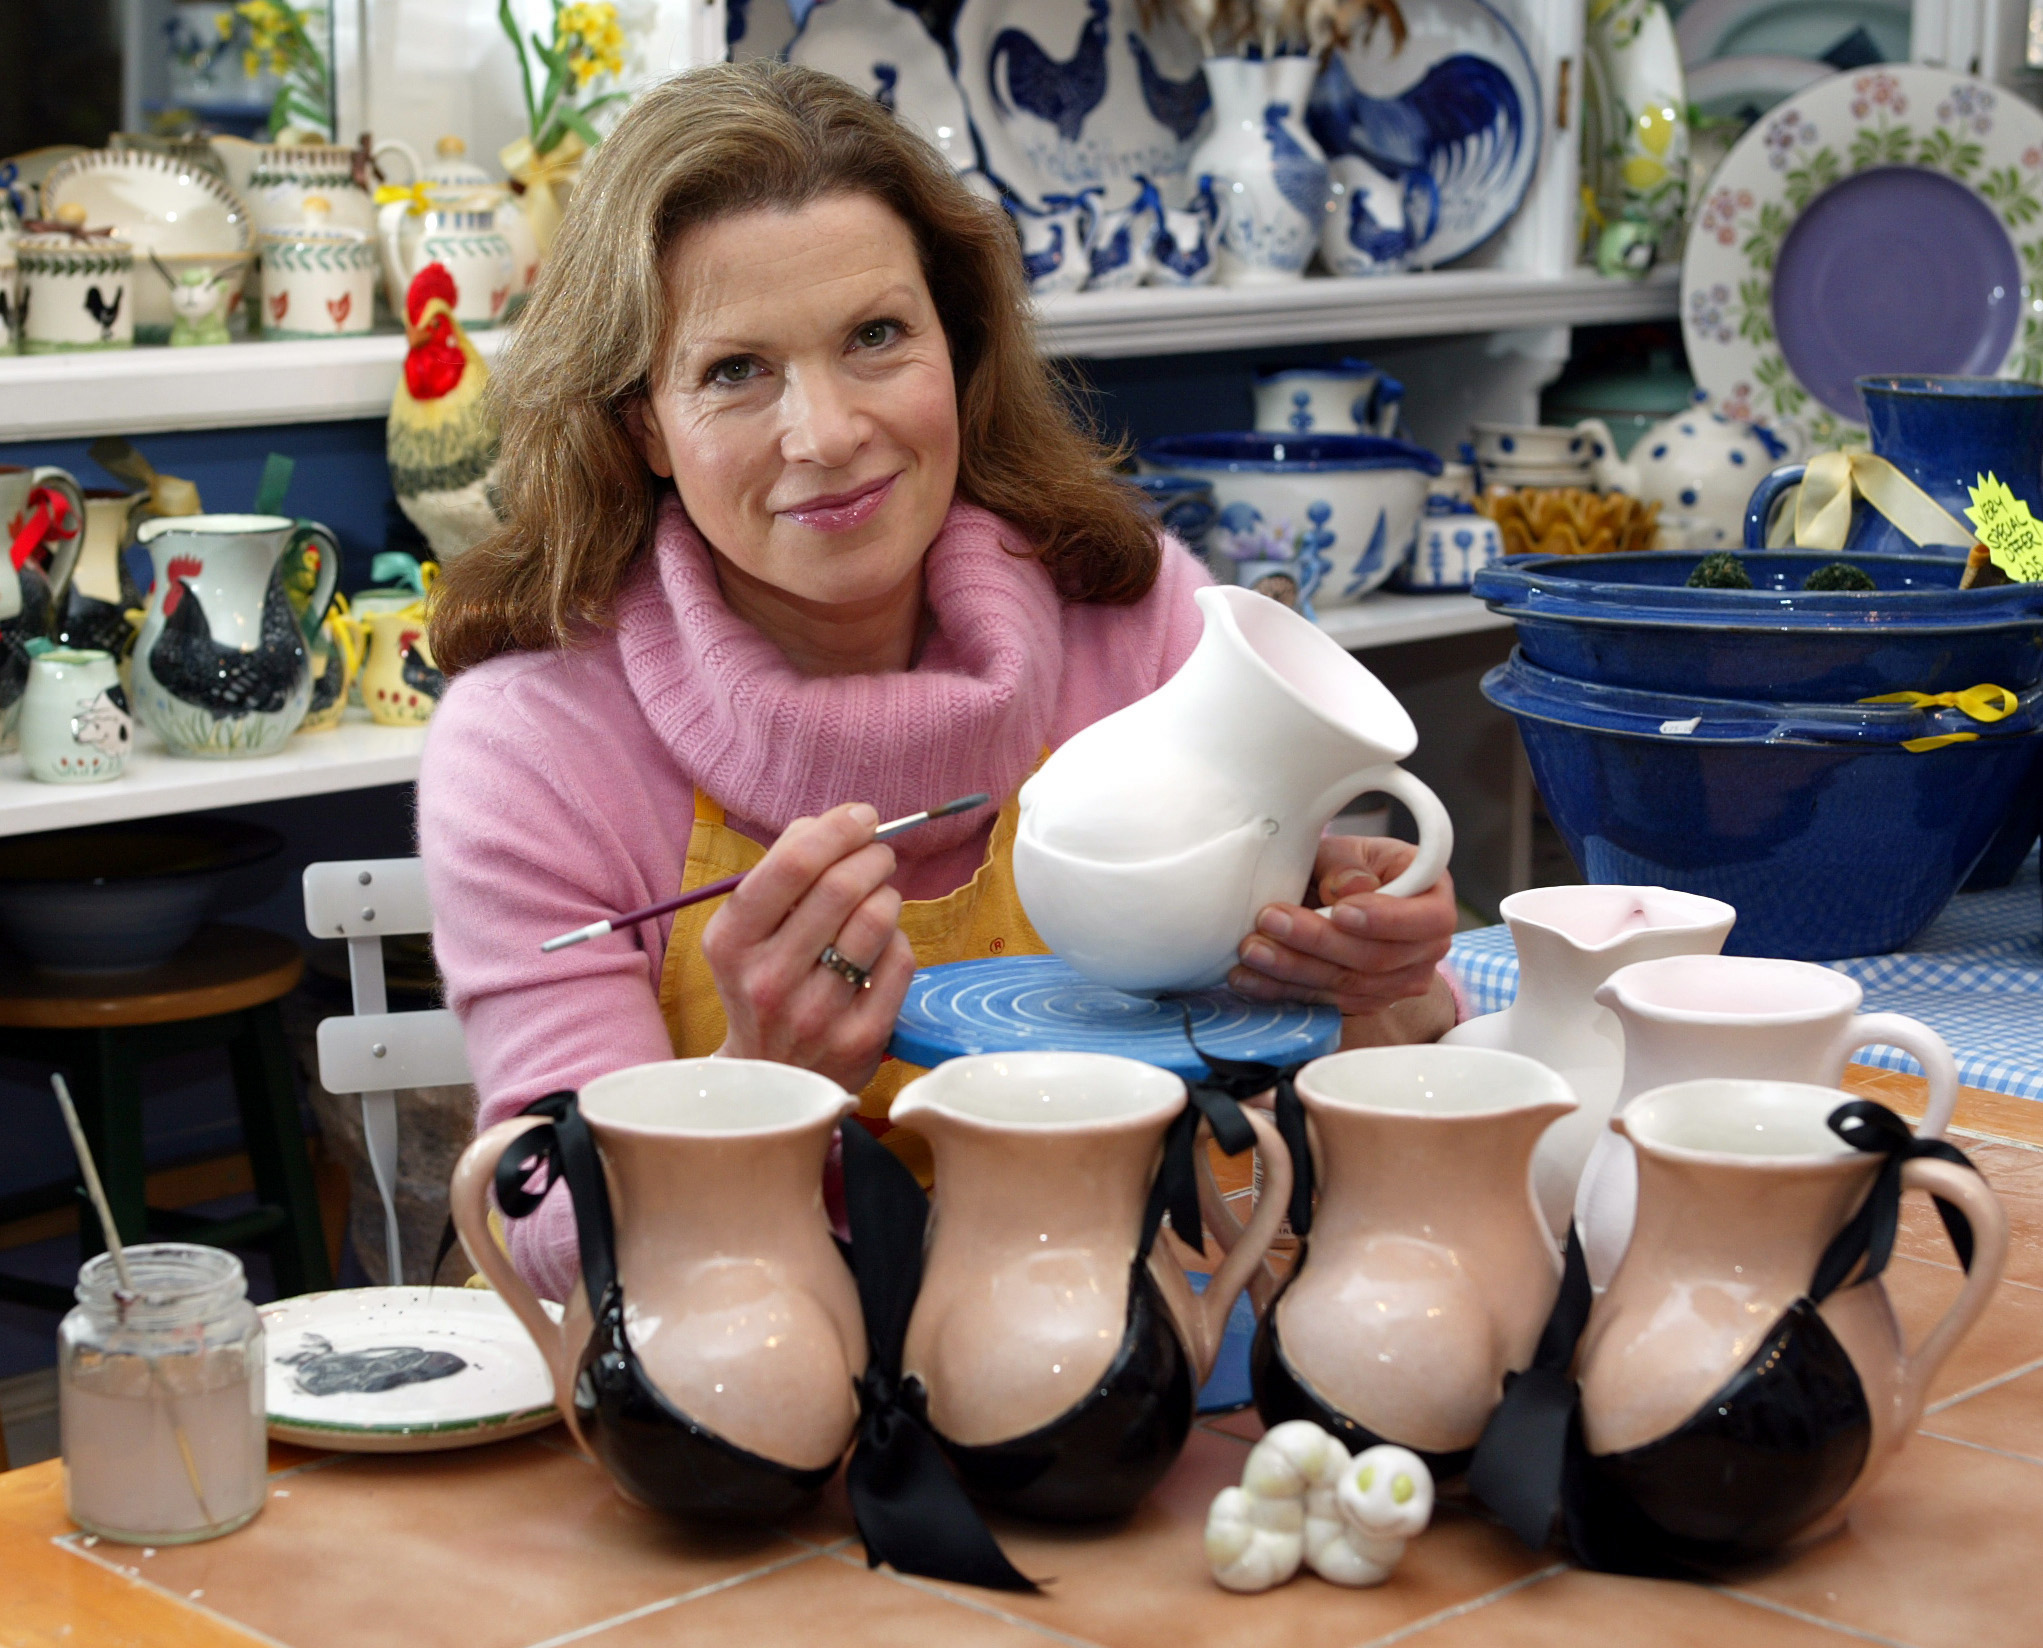 Bespoke Jugs for 'I'm a celebrity get me out of here'